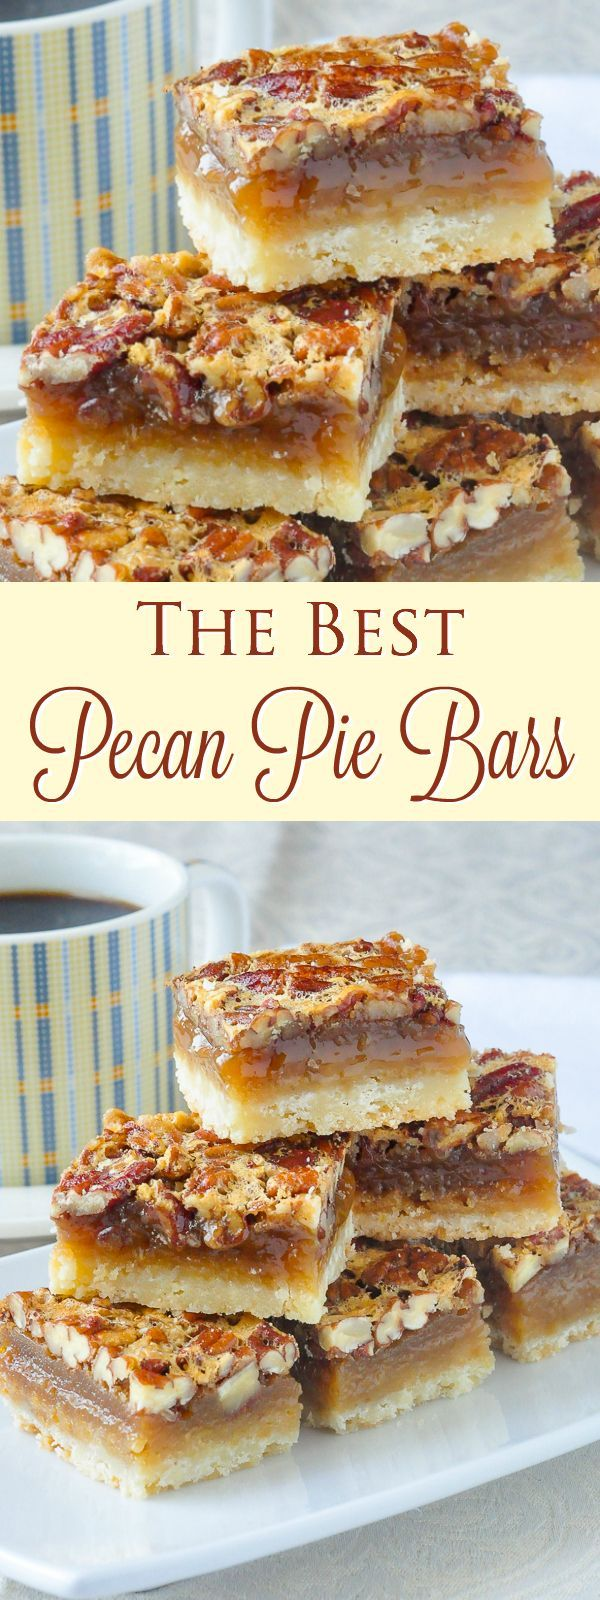 The Best Pecan Pie Bars - so quick & easy to make!